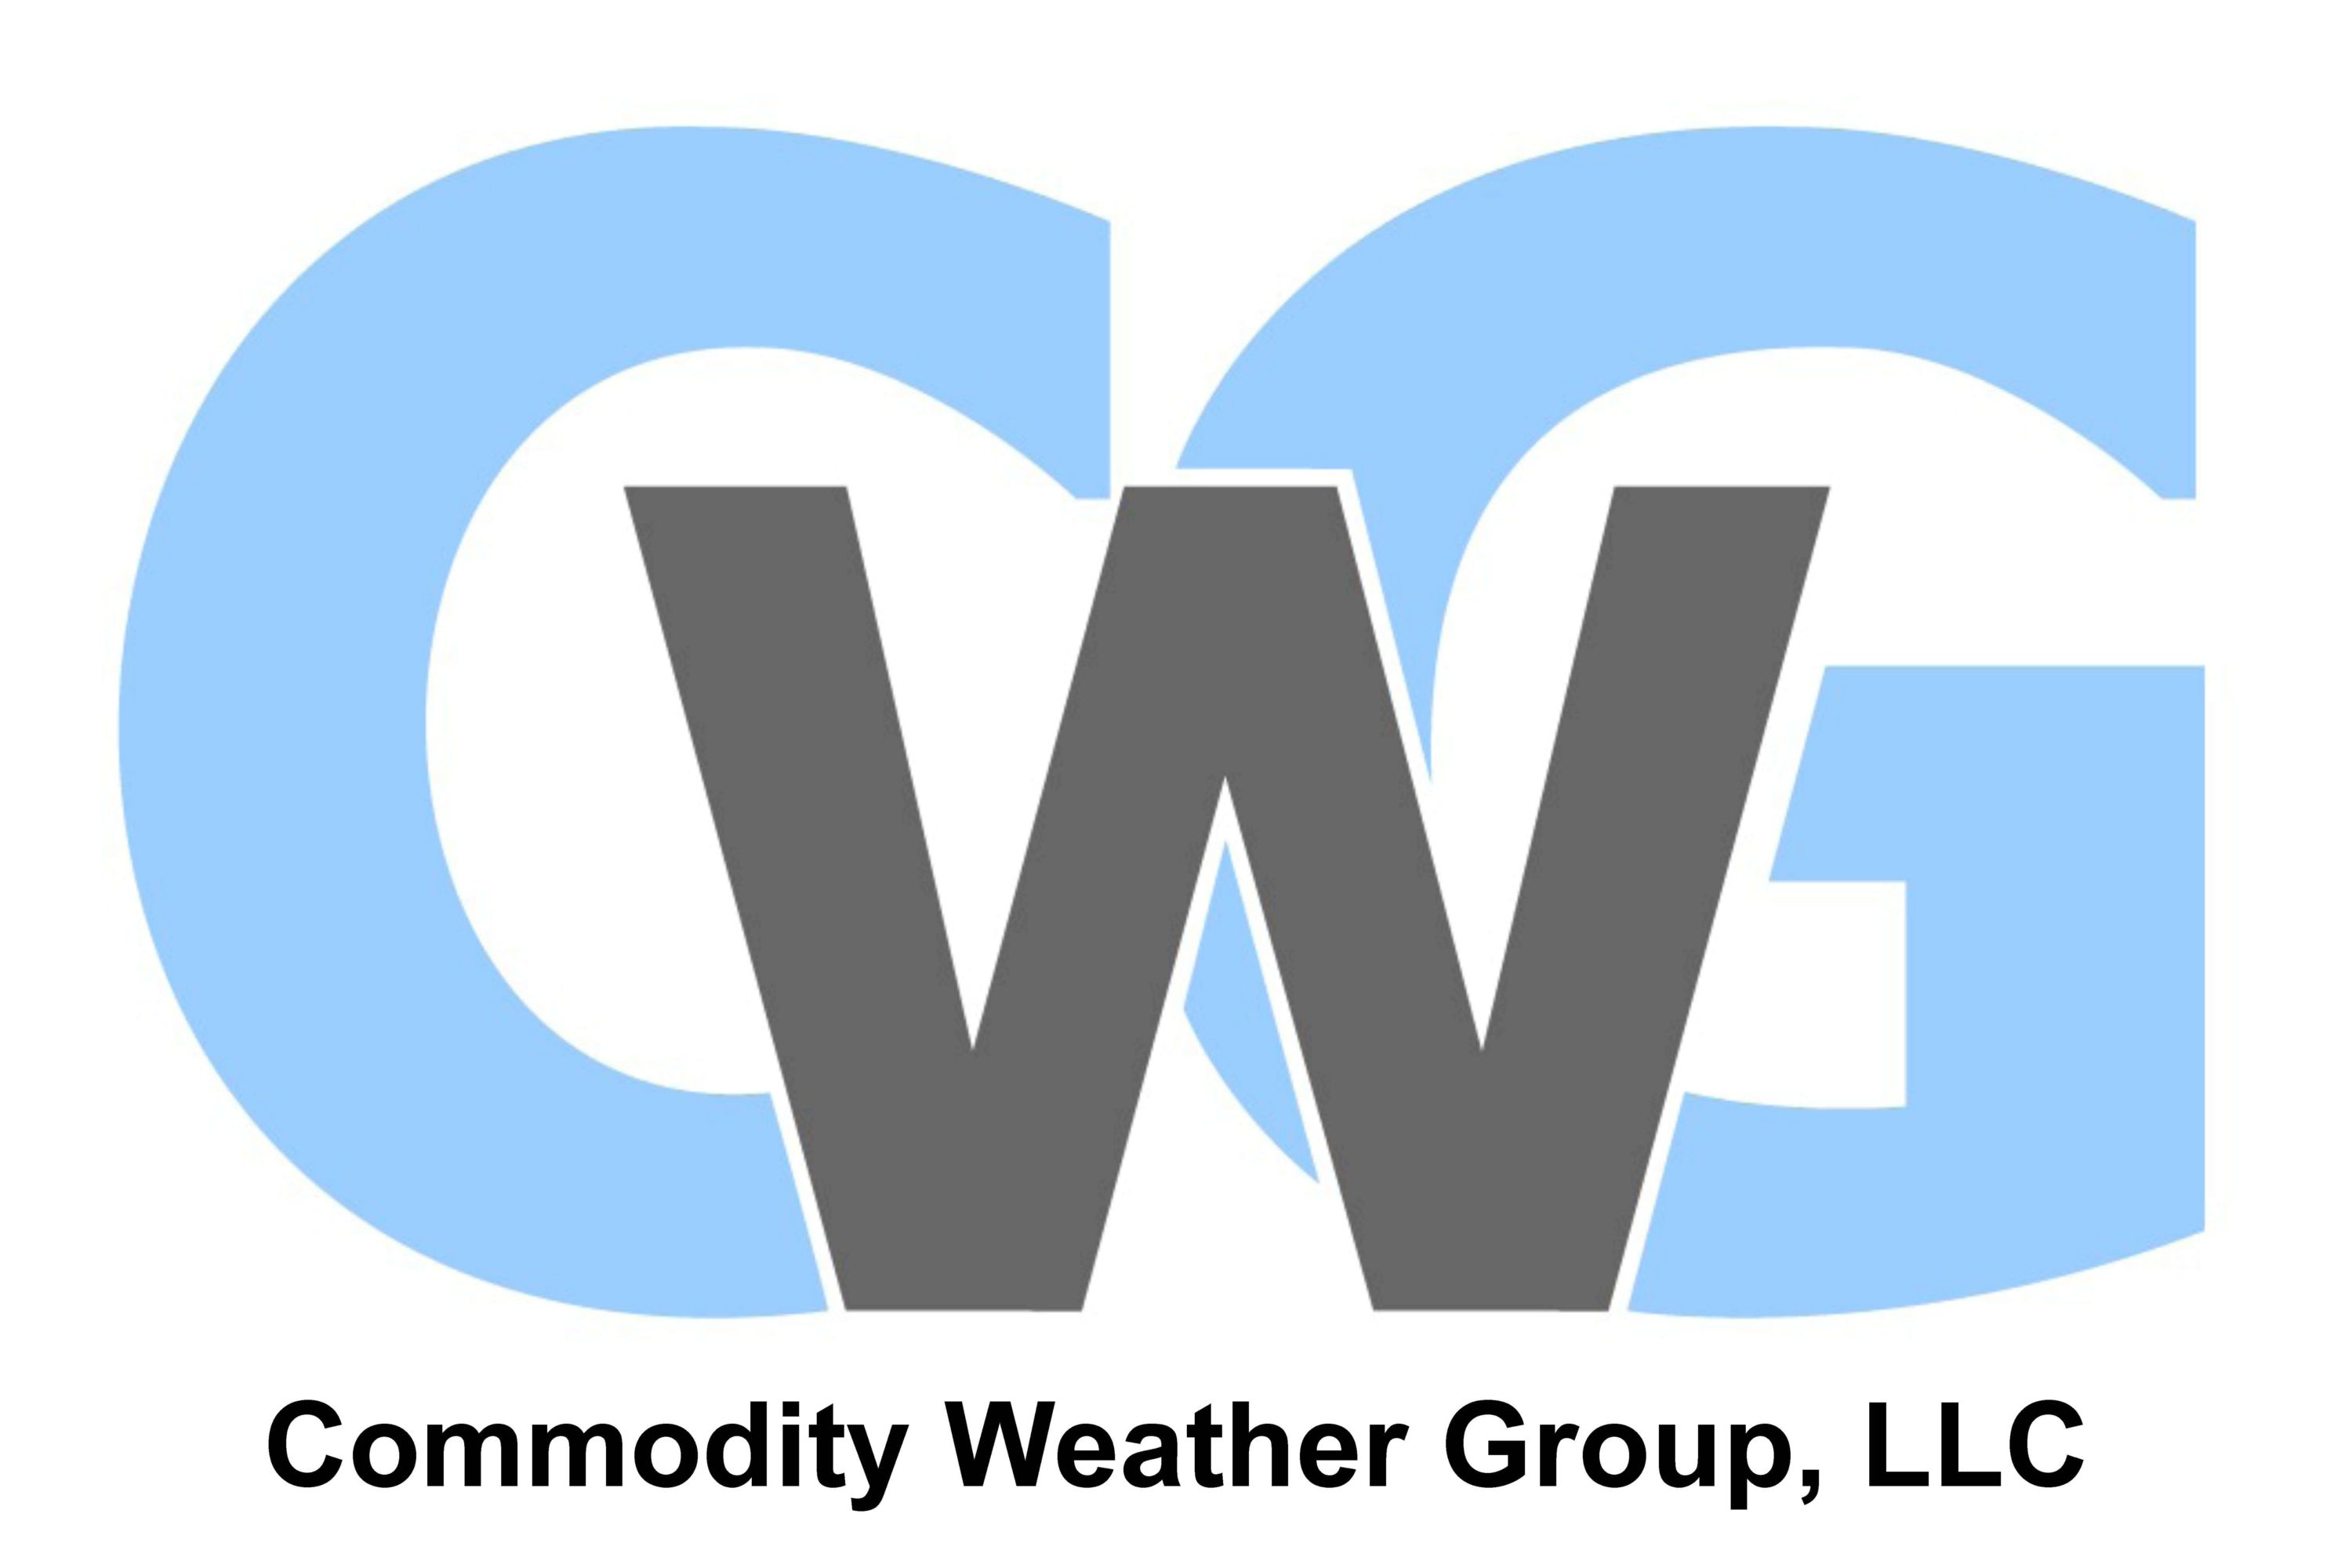 Commodity Weather Group